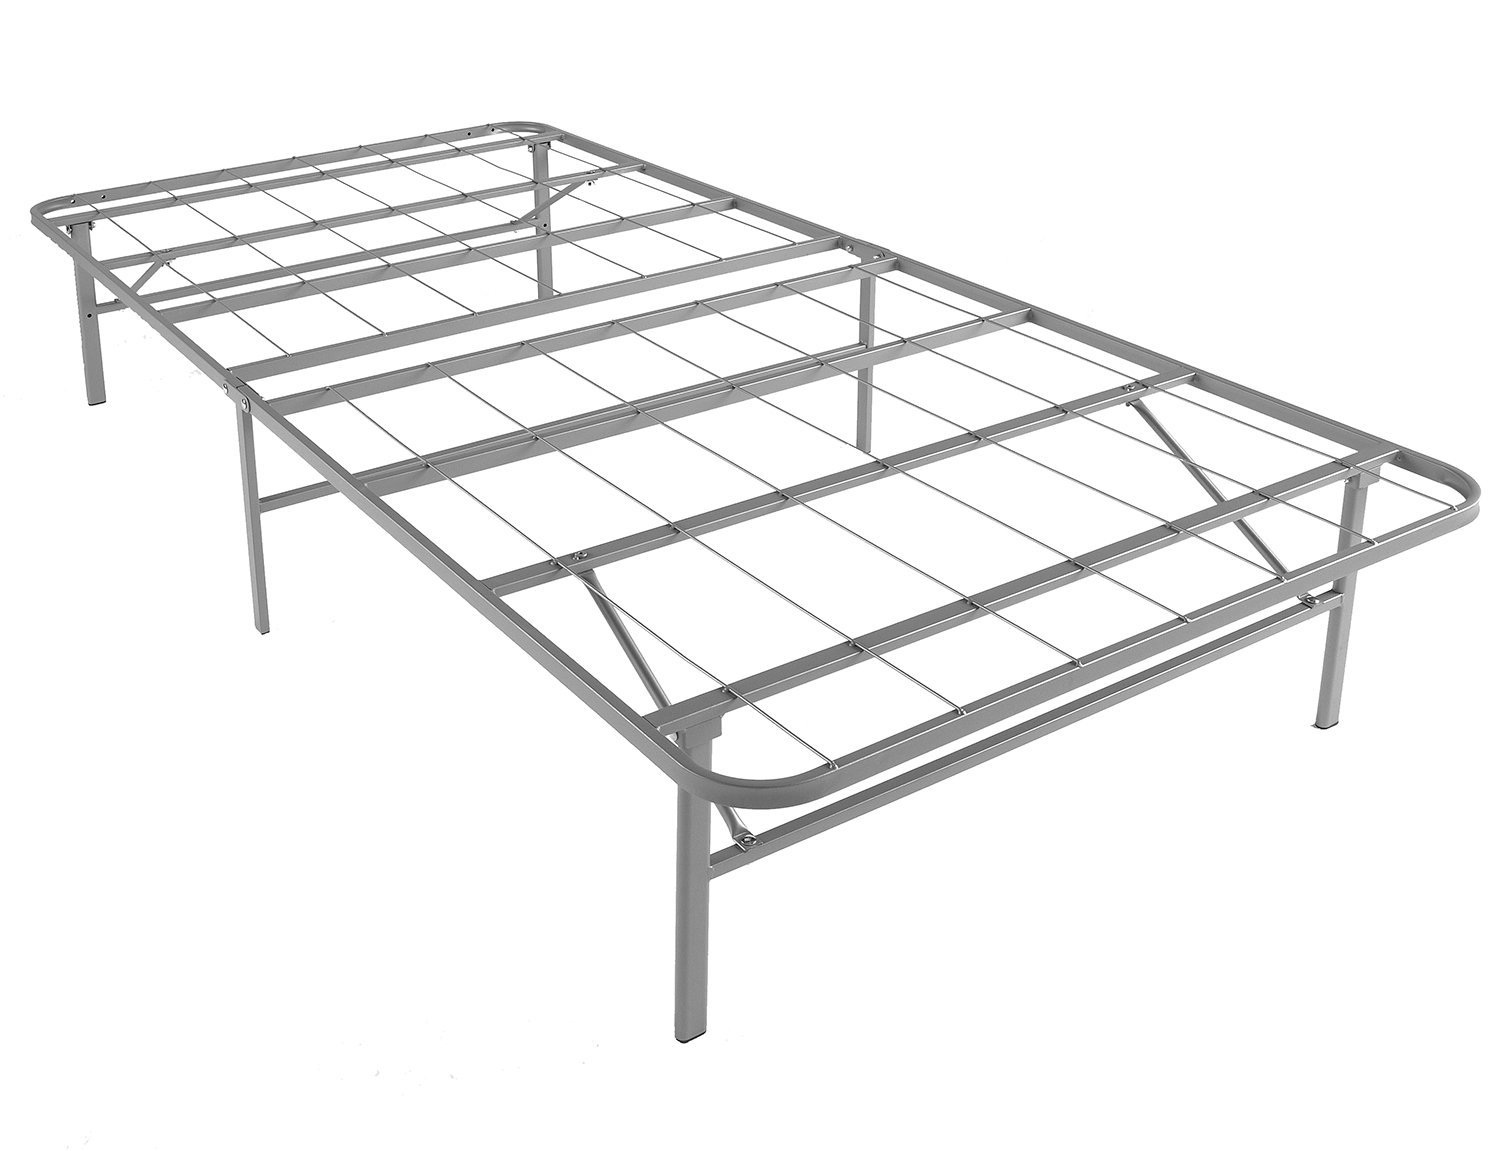 Mantua Premium Platform Bed Base in Silver, Fits Twin Mattress, Replaces Box Spring and Bed Frame, Room for Storage Underneath, No Tools Required